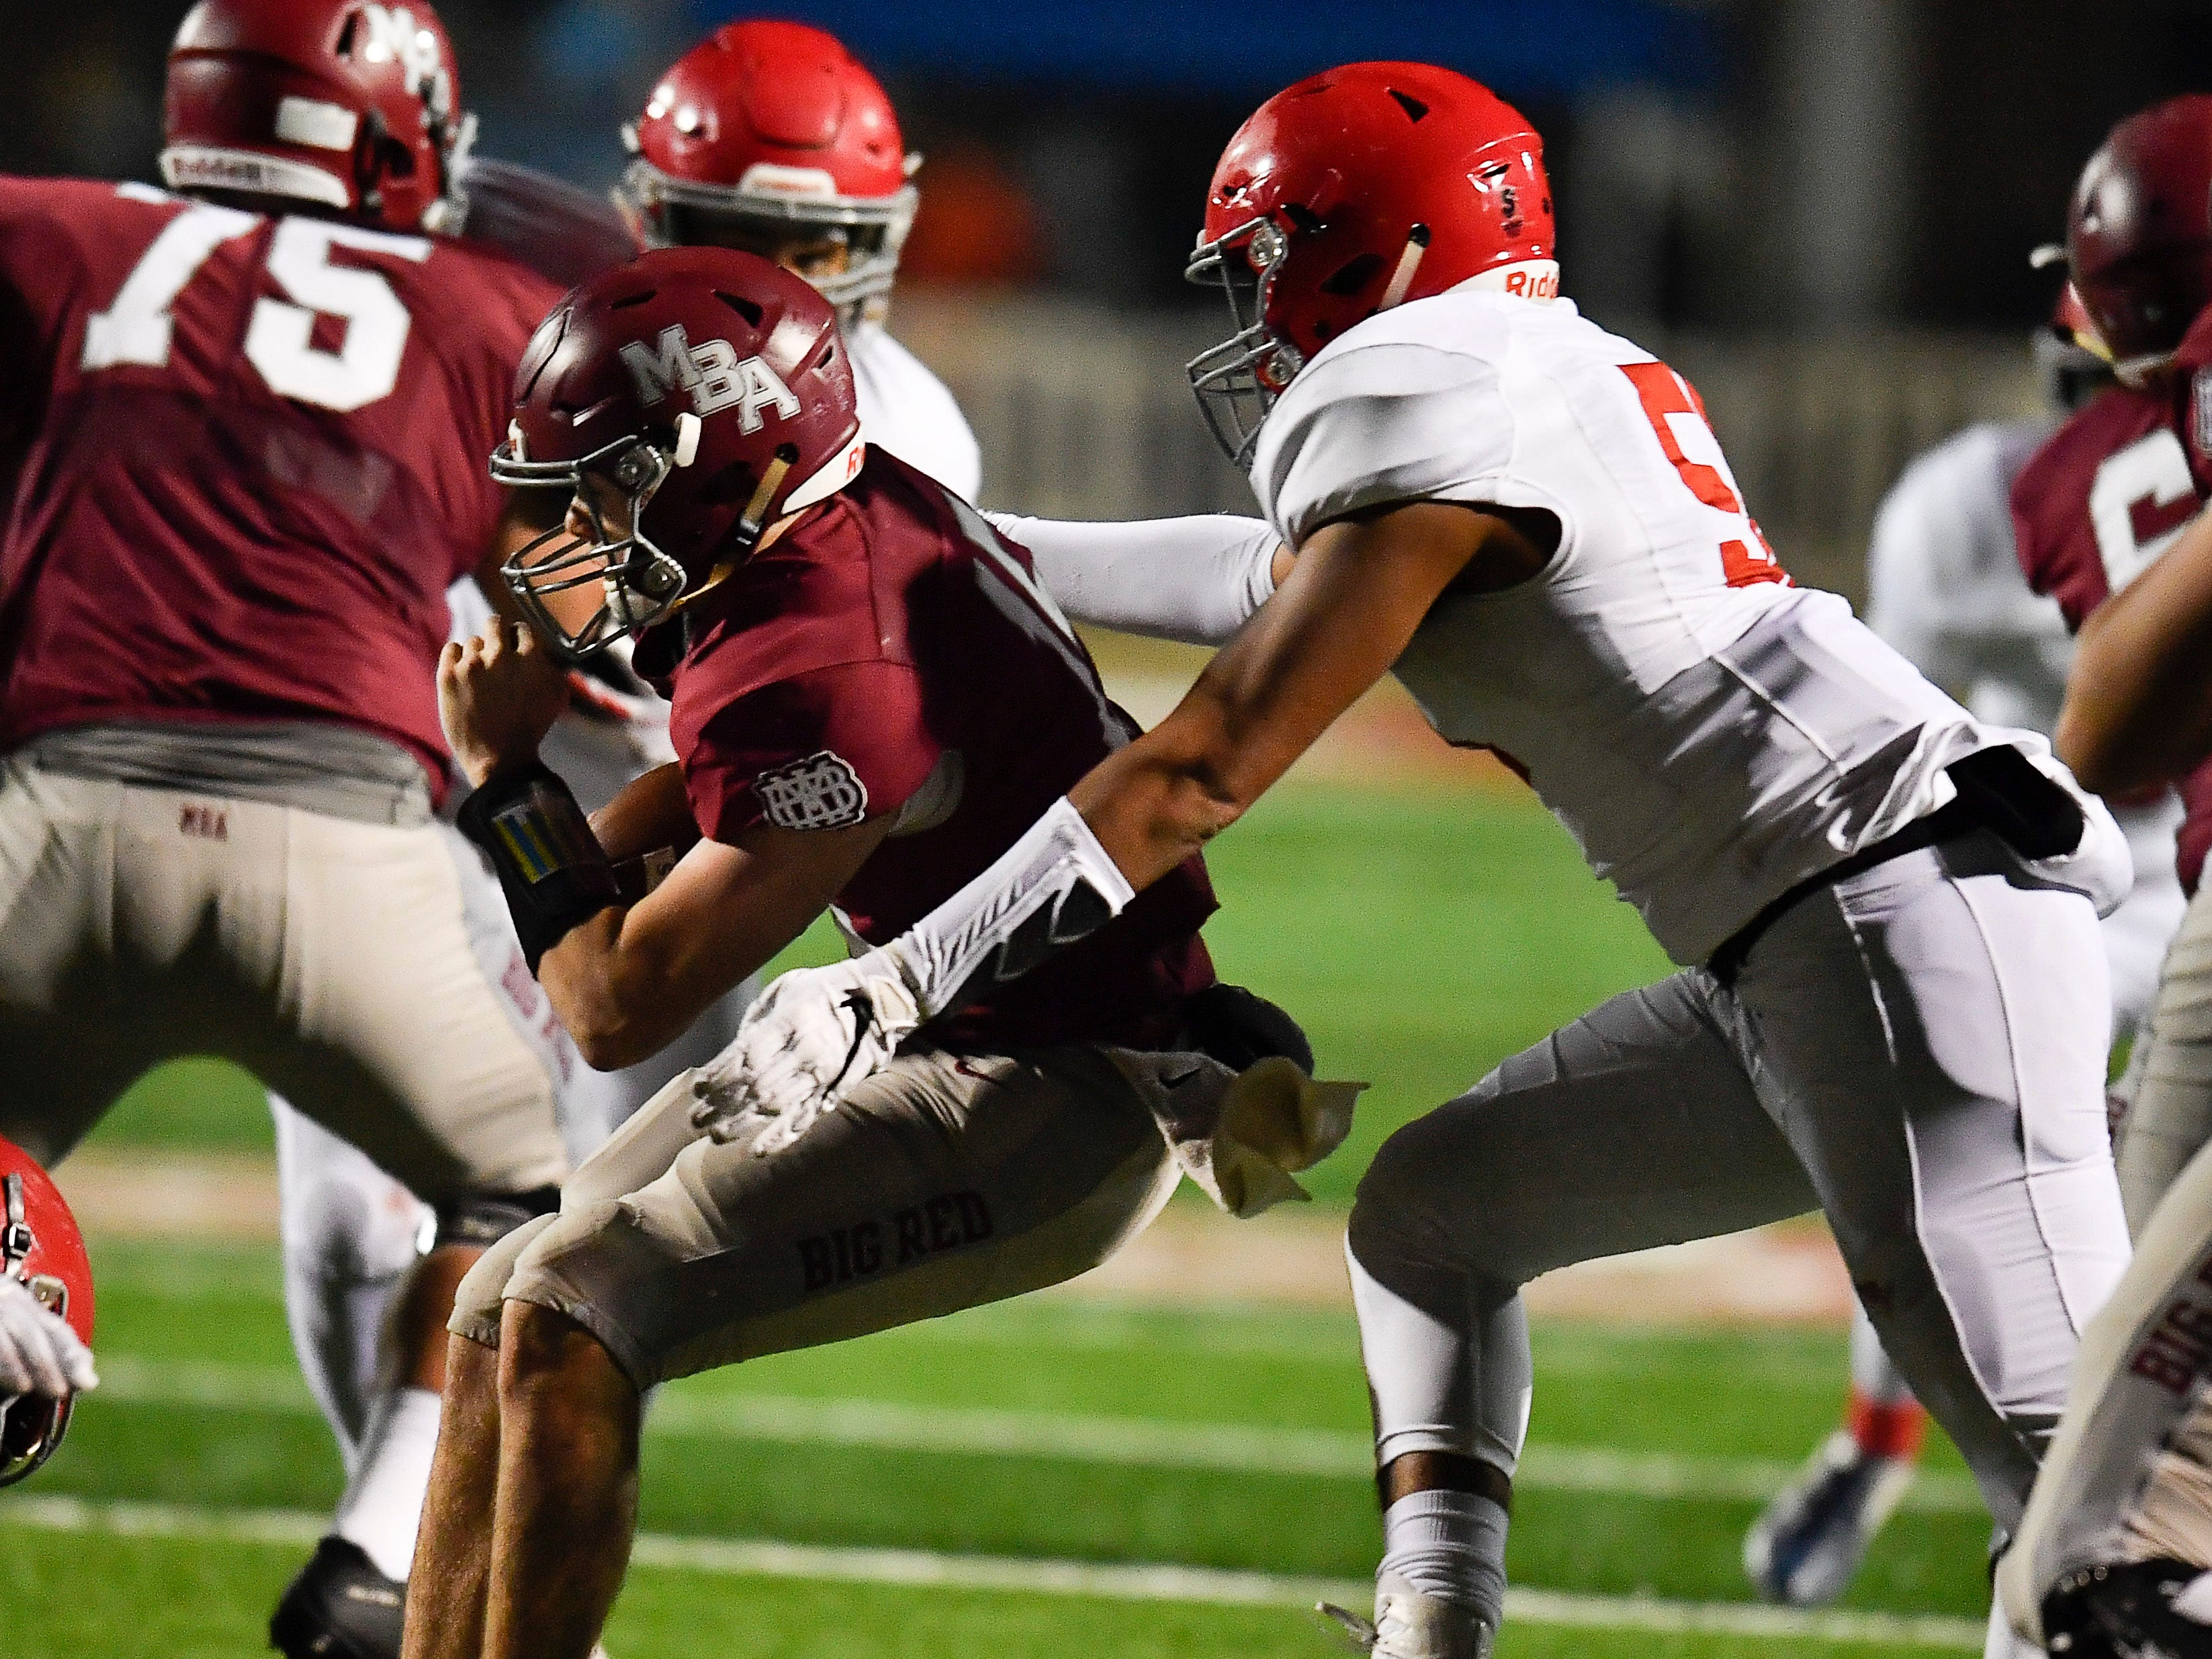 MBA quarterback William Tyrone (15) is sacked by Brentwood Academy defensive lineman Yirayah Lanier (51) during the fourth quarter of their 2018 Division II Class AAA State Football Playoff game at Montgomery Bell Academy Friday, Nov. 16, 2018, in Nashville, Tenn.